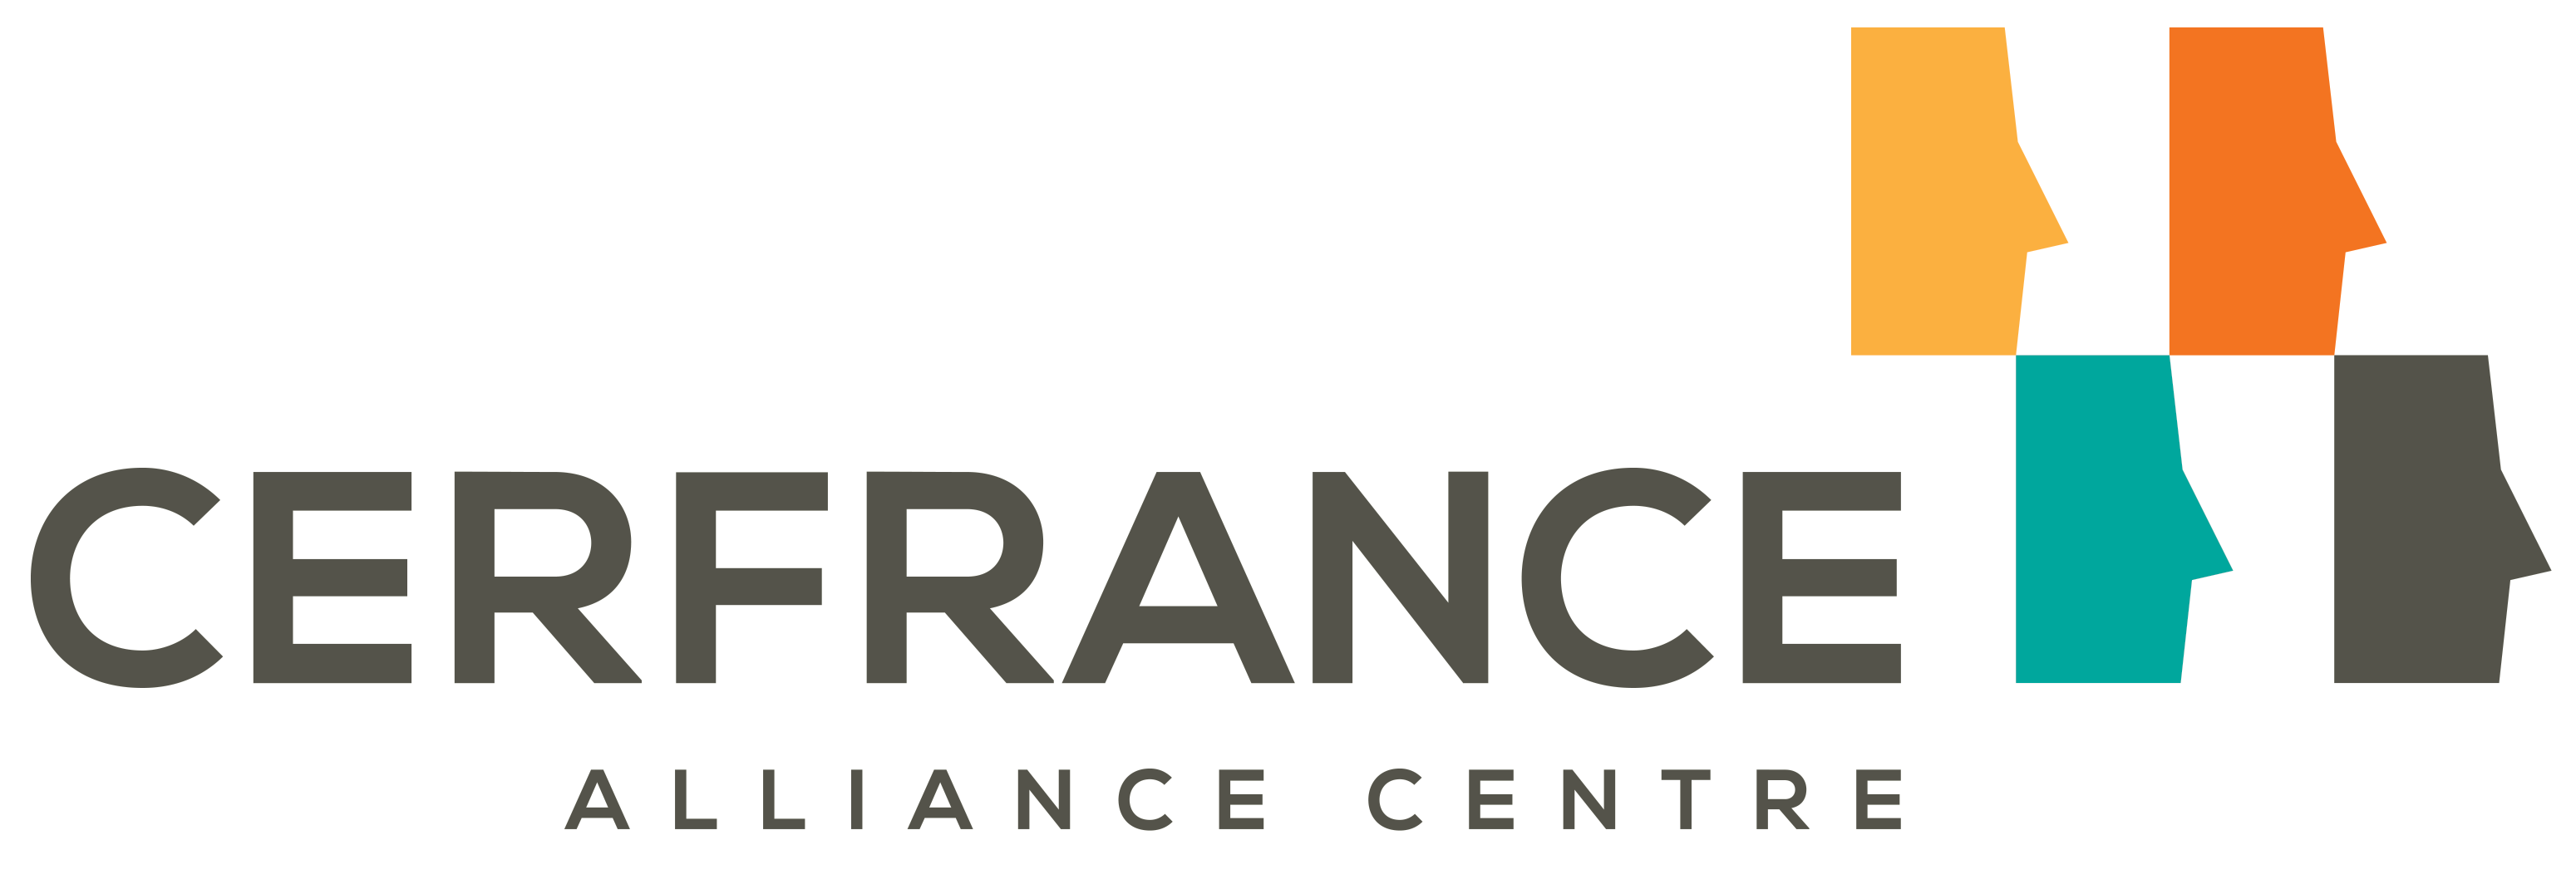 CER France Alliance Centre Chartres